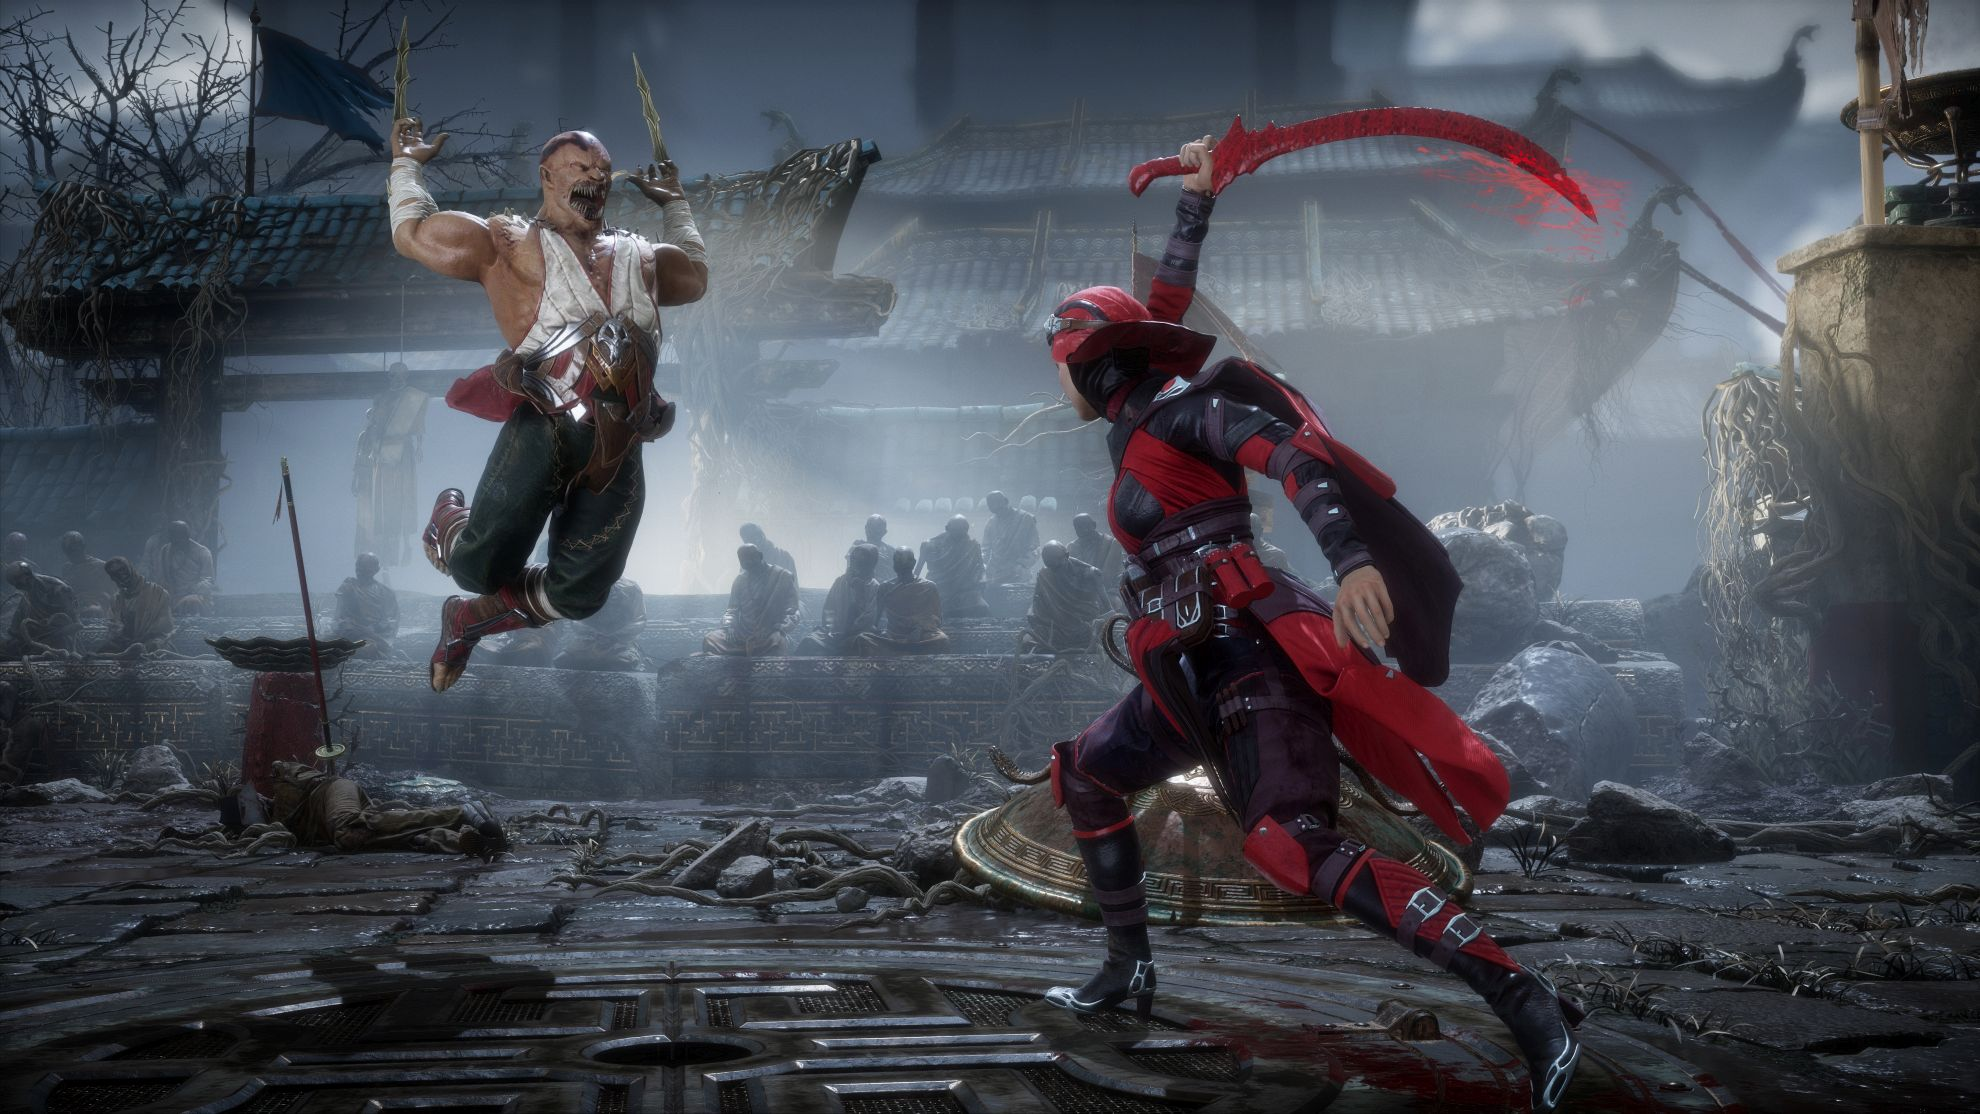 Mk11 Wallpaper: Mortal Kombat 11: All The New Story, Gameplay, And